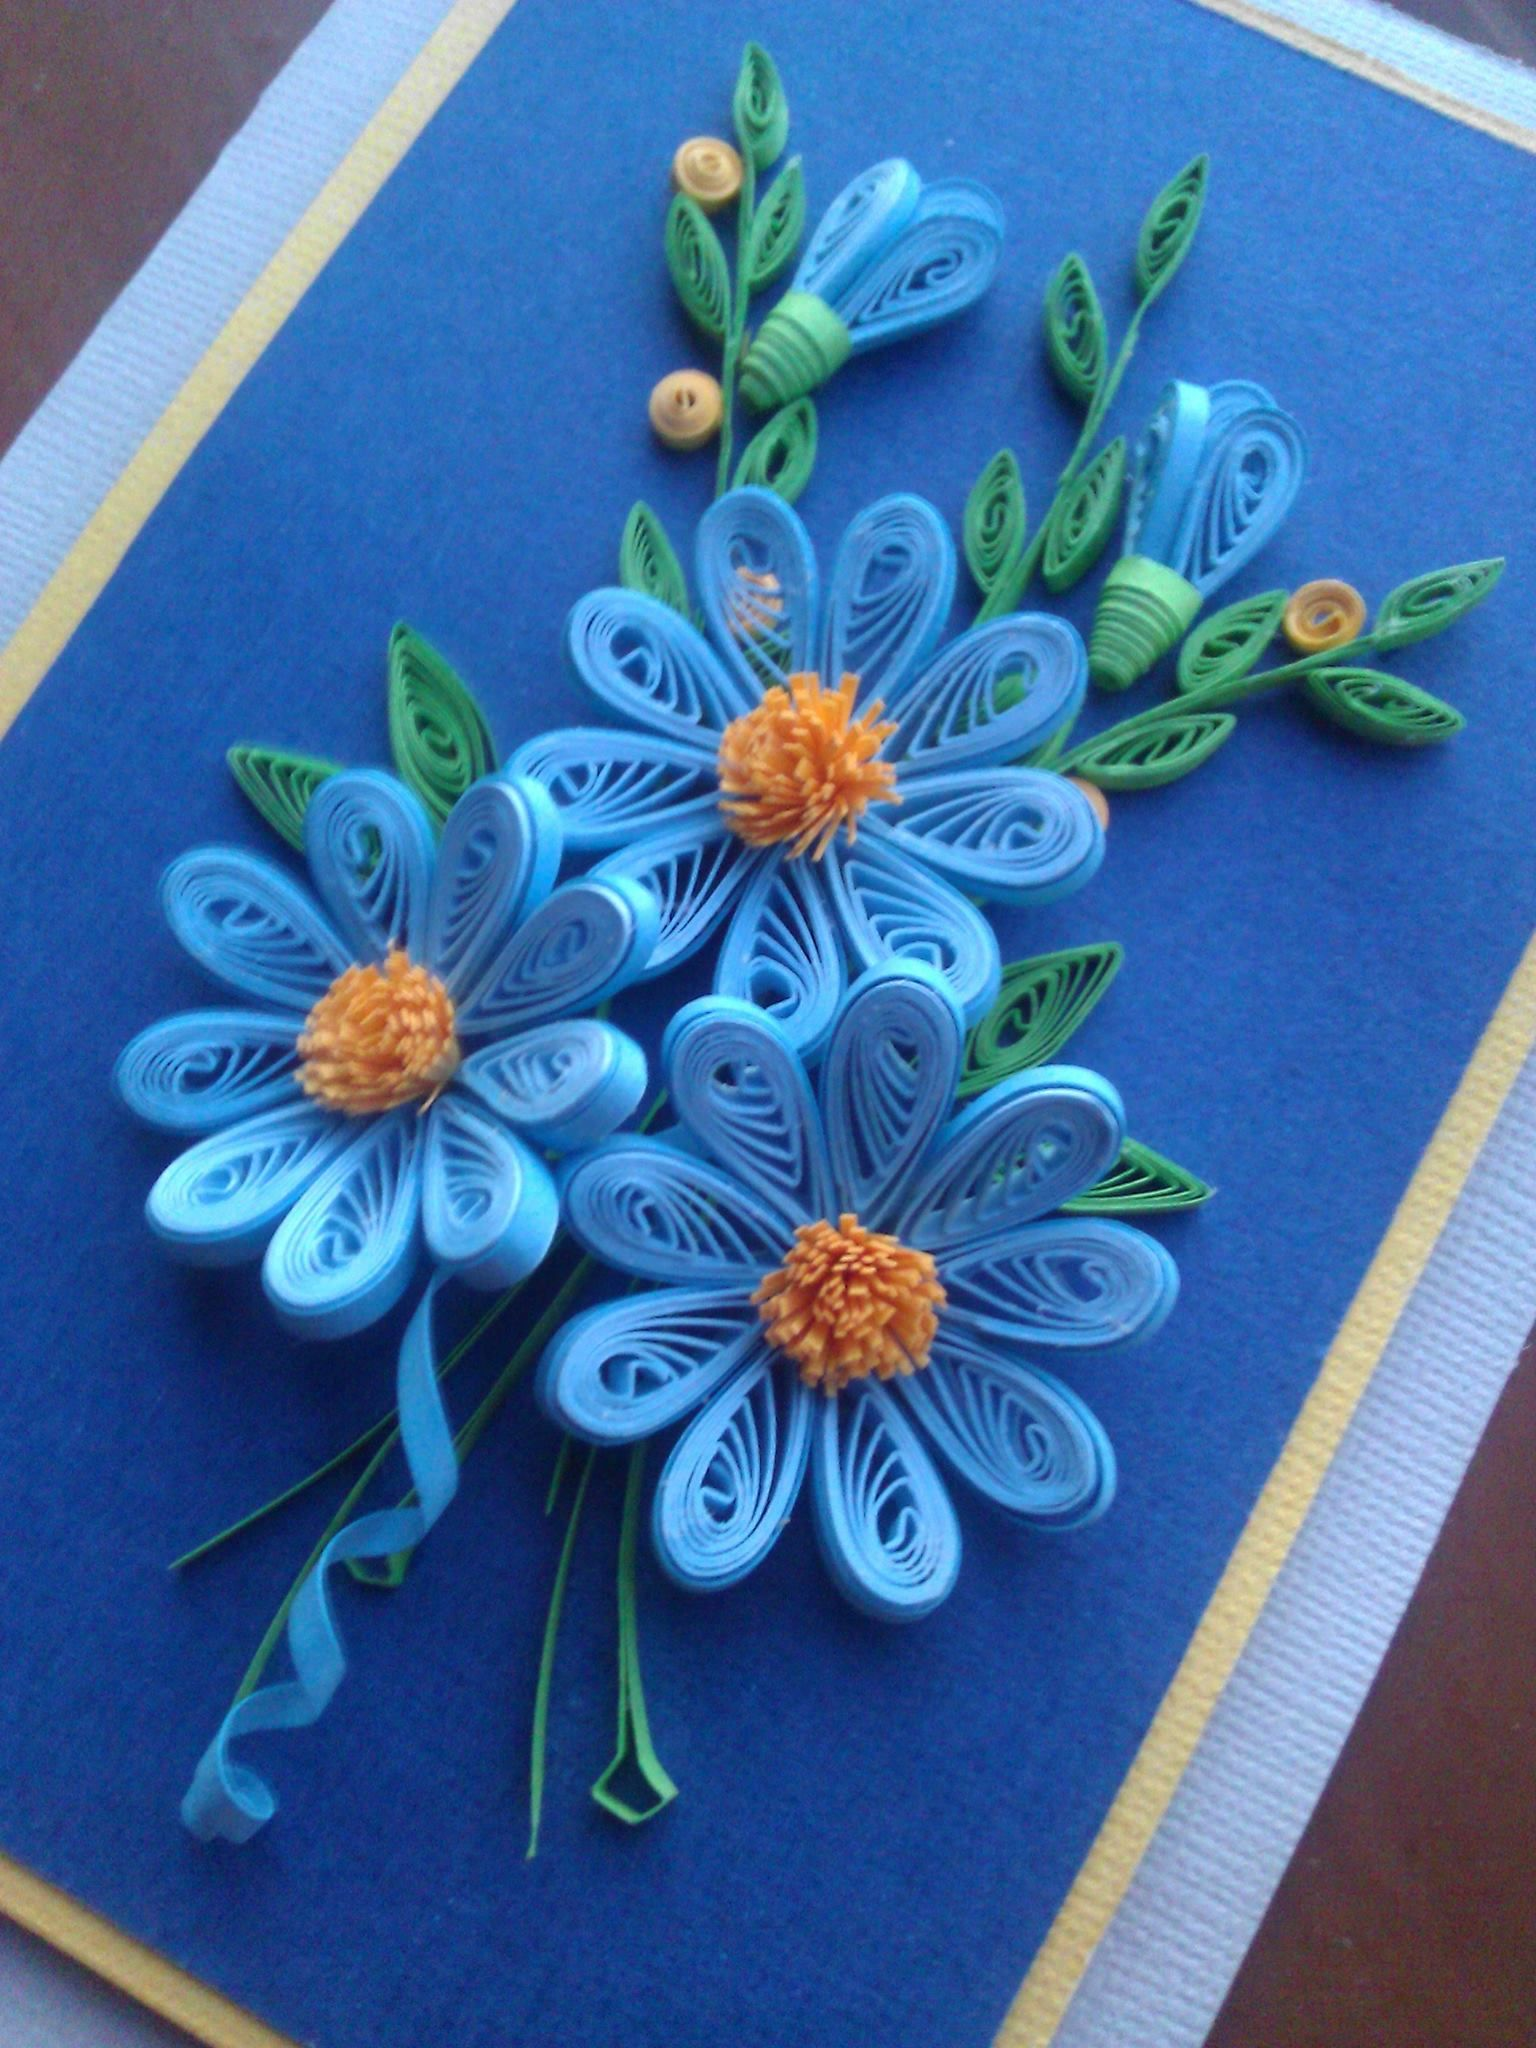 Pin By Nadia On Quilling Pinterest Quilling Paper Quilling And